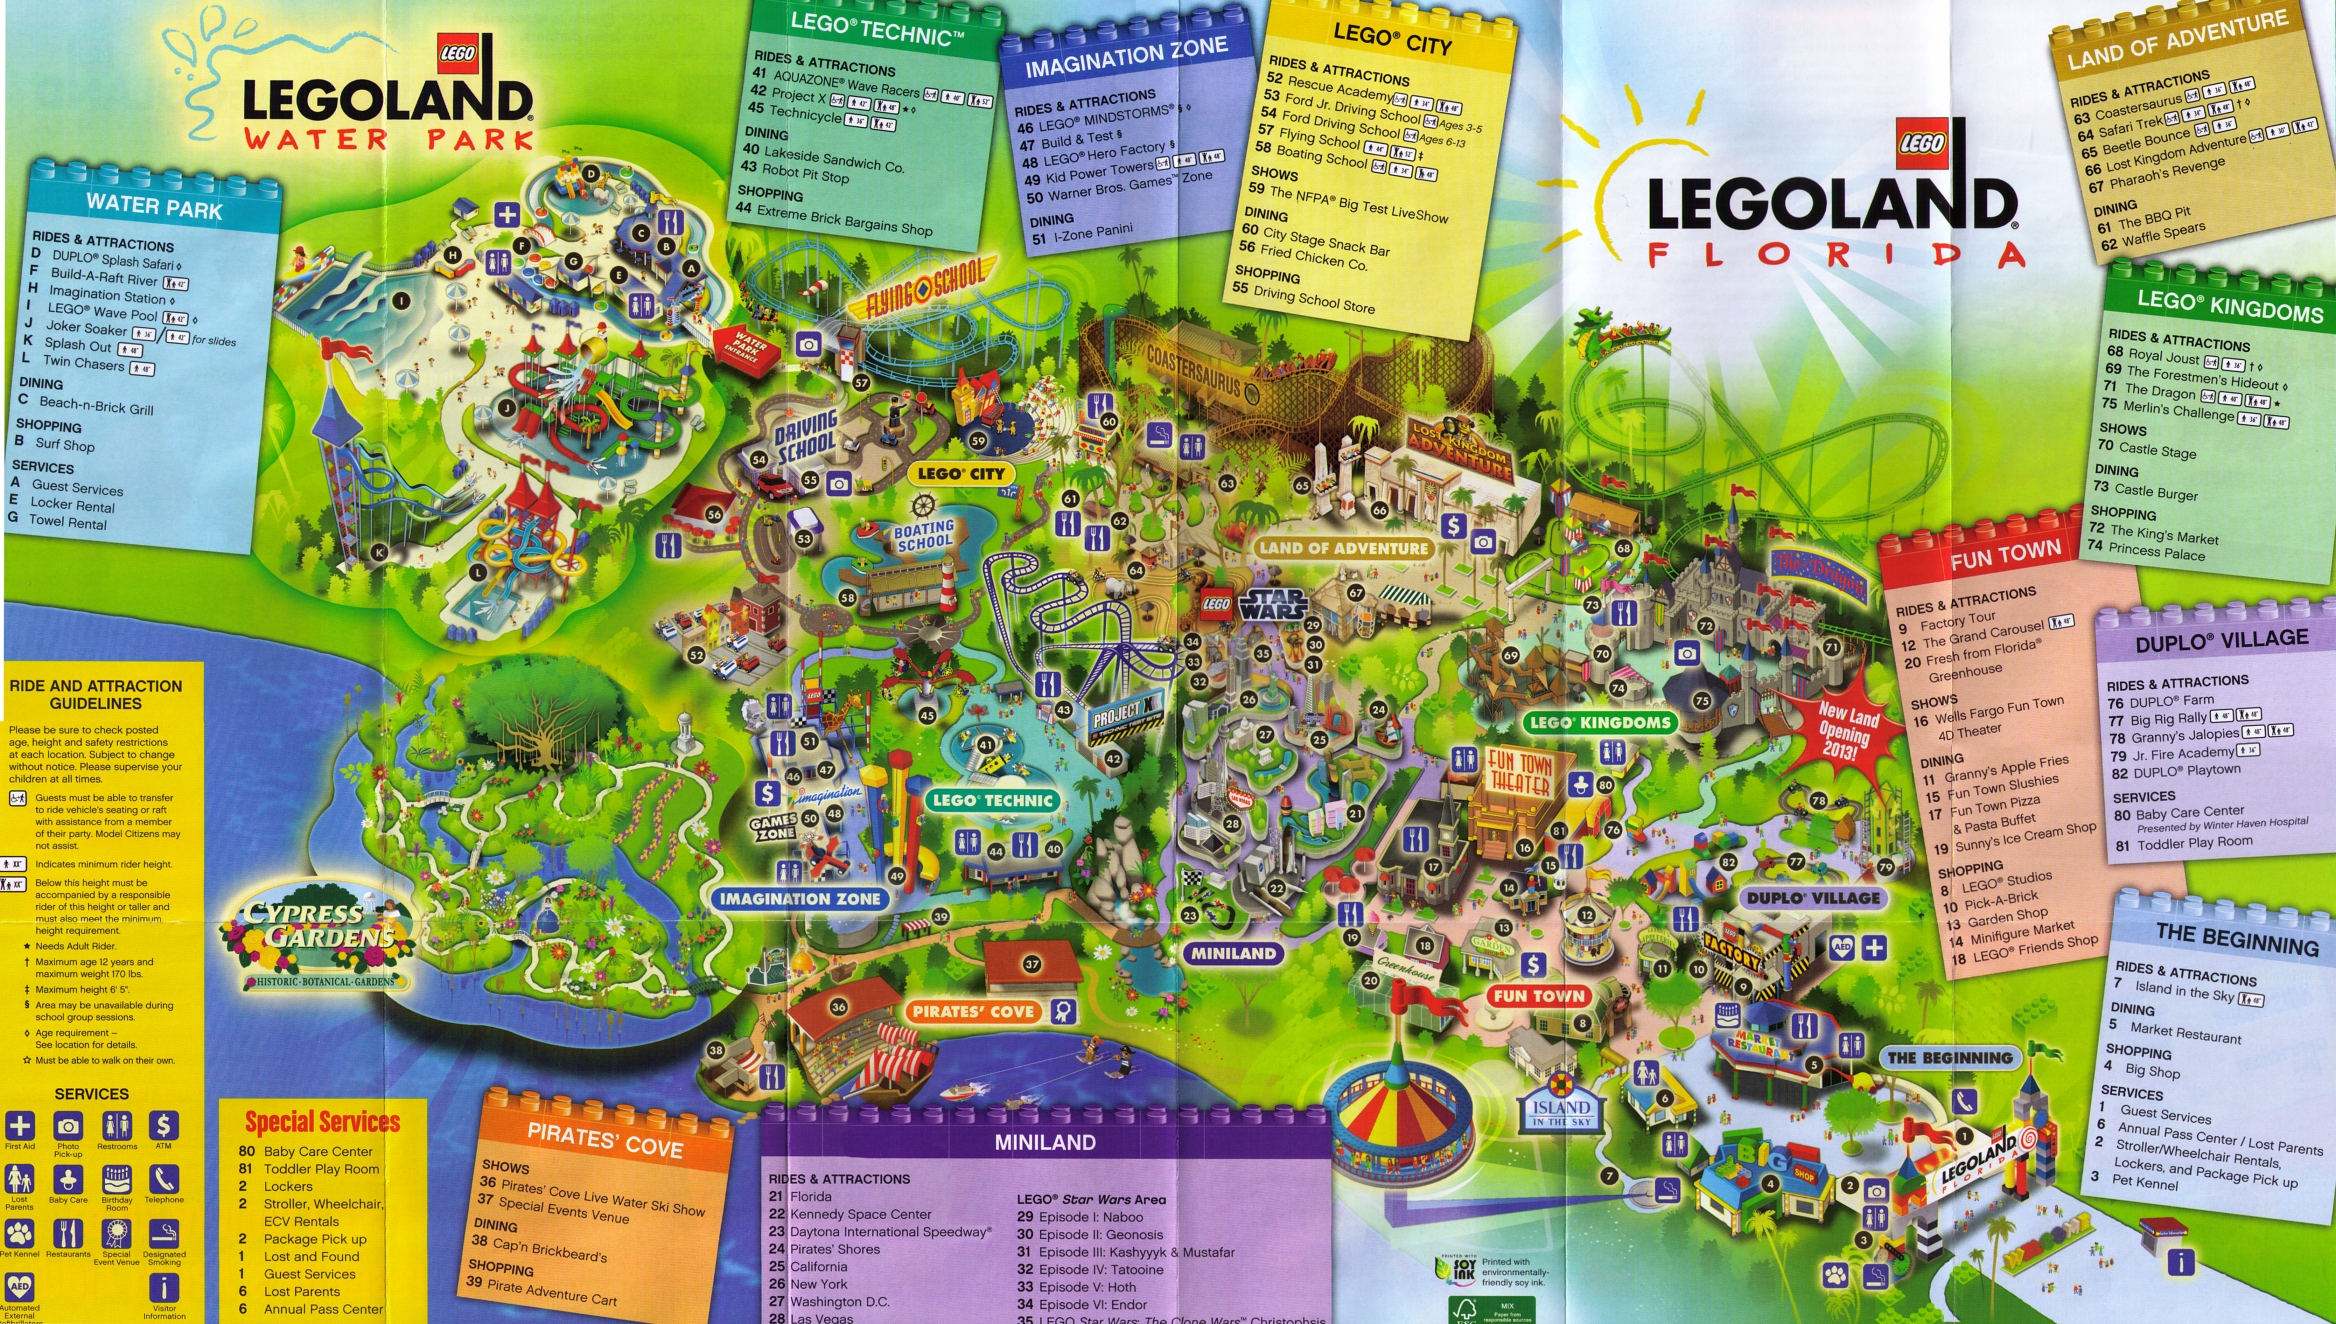 Park Map 3 at Legoland Florida Photos